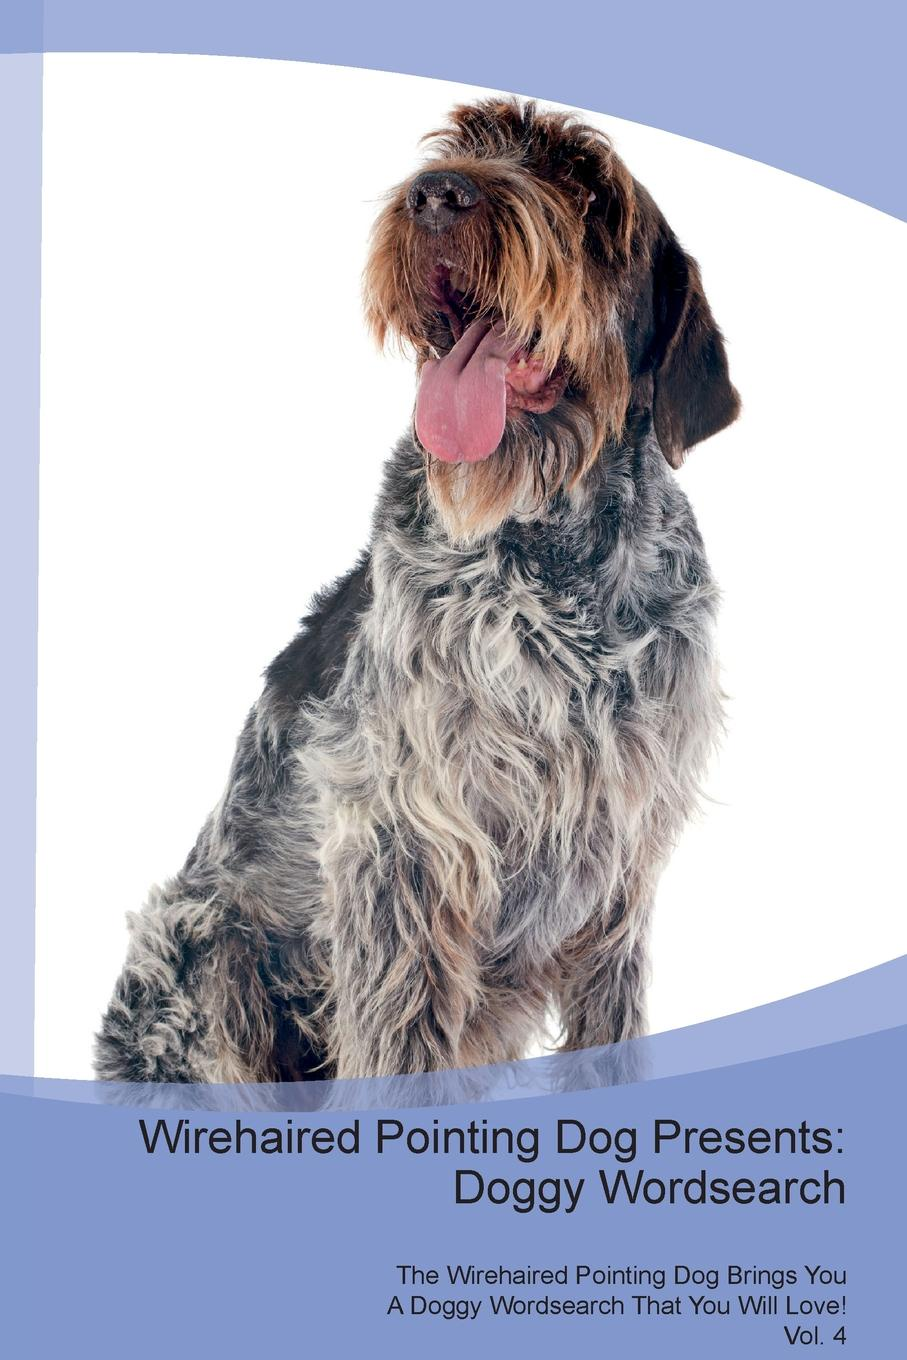 Doggy Puzzles Wirehaired Pointing Dog Presents. Wordsearch The Brings You A That Will Love! Vol. 4